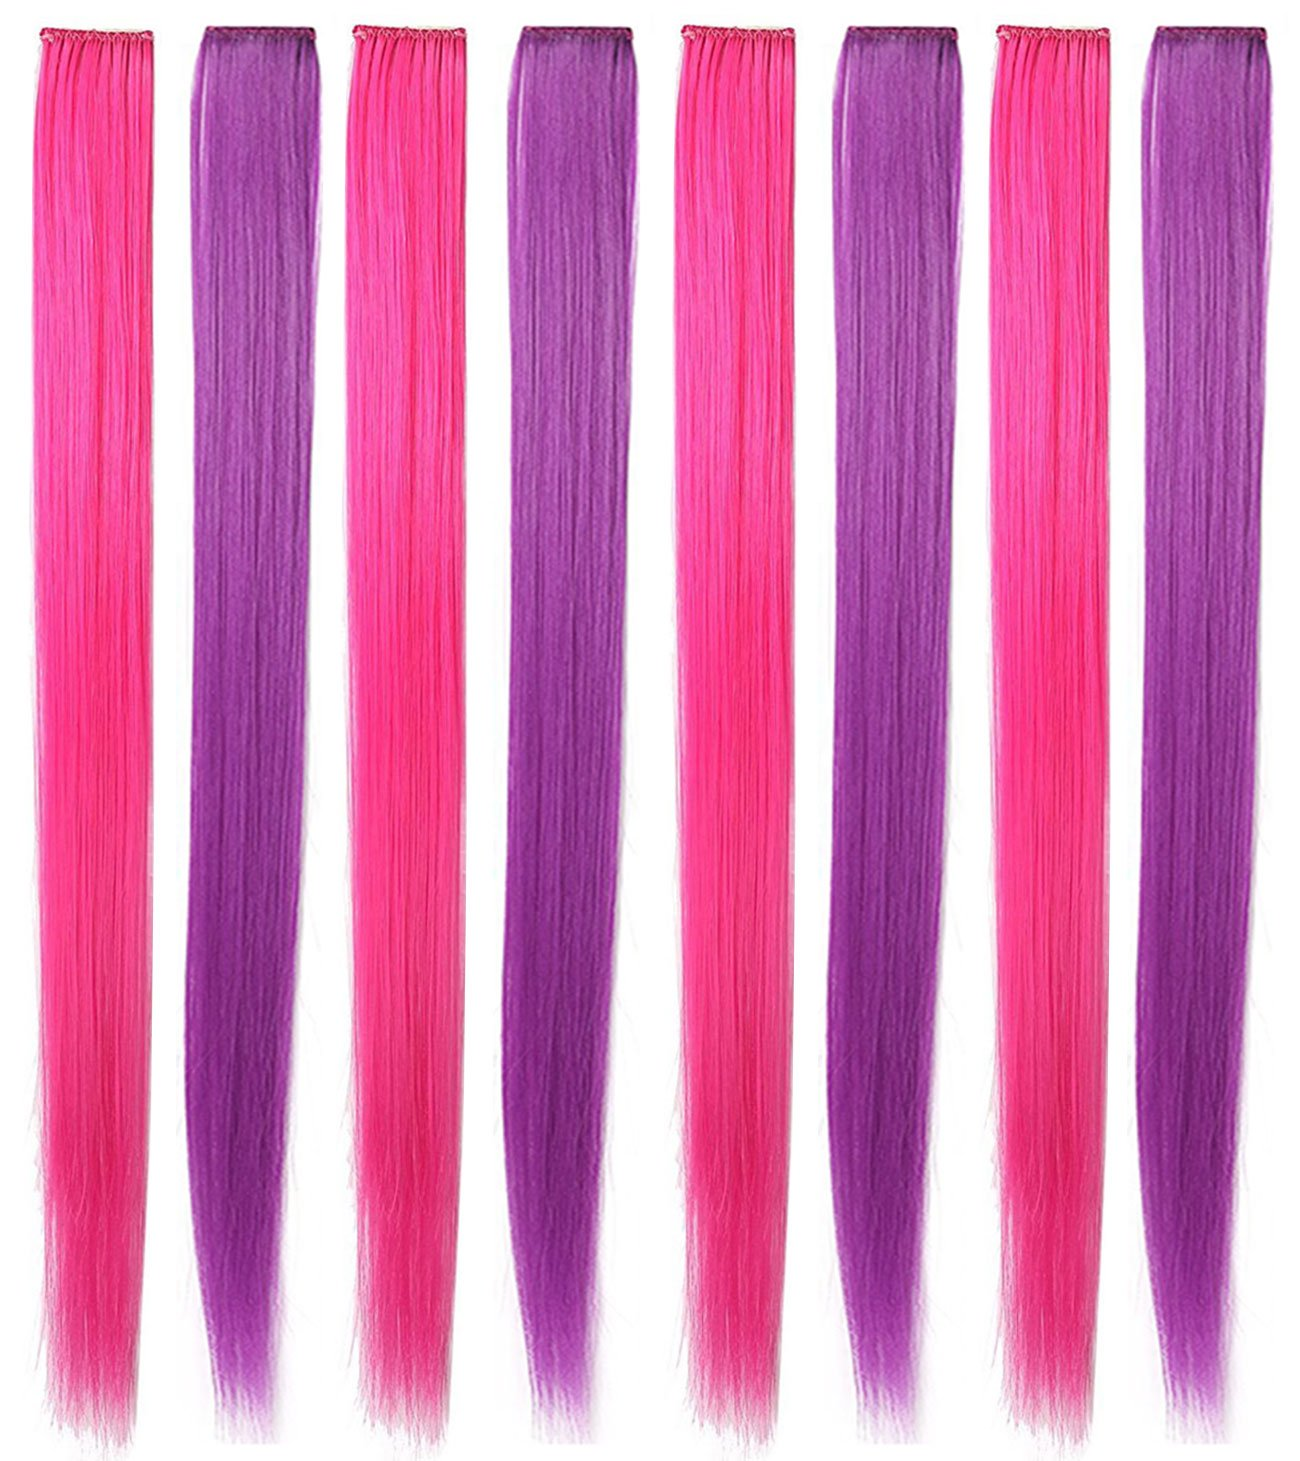 Rhyme 20'' 8PCS Pink Purple Hair Pieces for Girls Princess Party Highlight Colored Hair Extensions Clip in/On for Girls and Kids Wig Pieces for Dolls by Rhyme